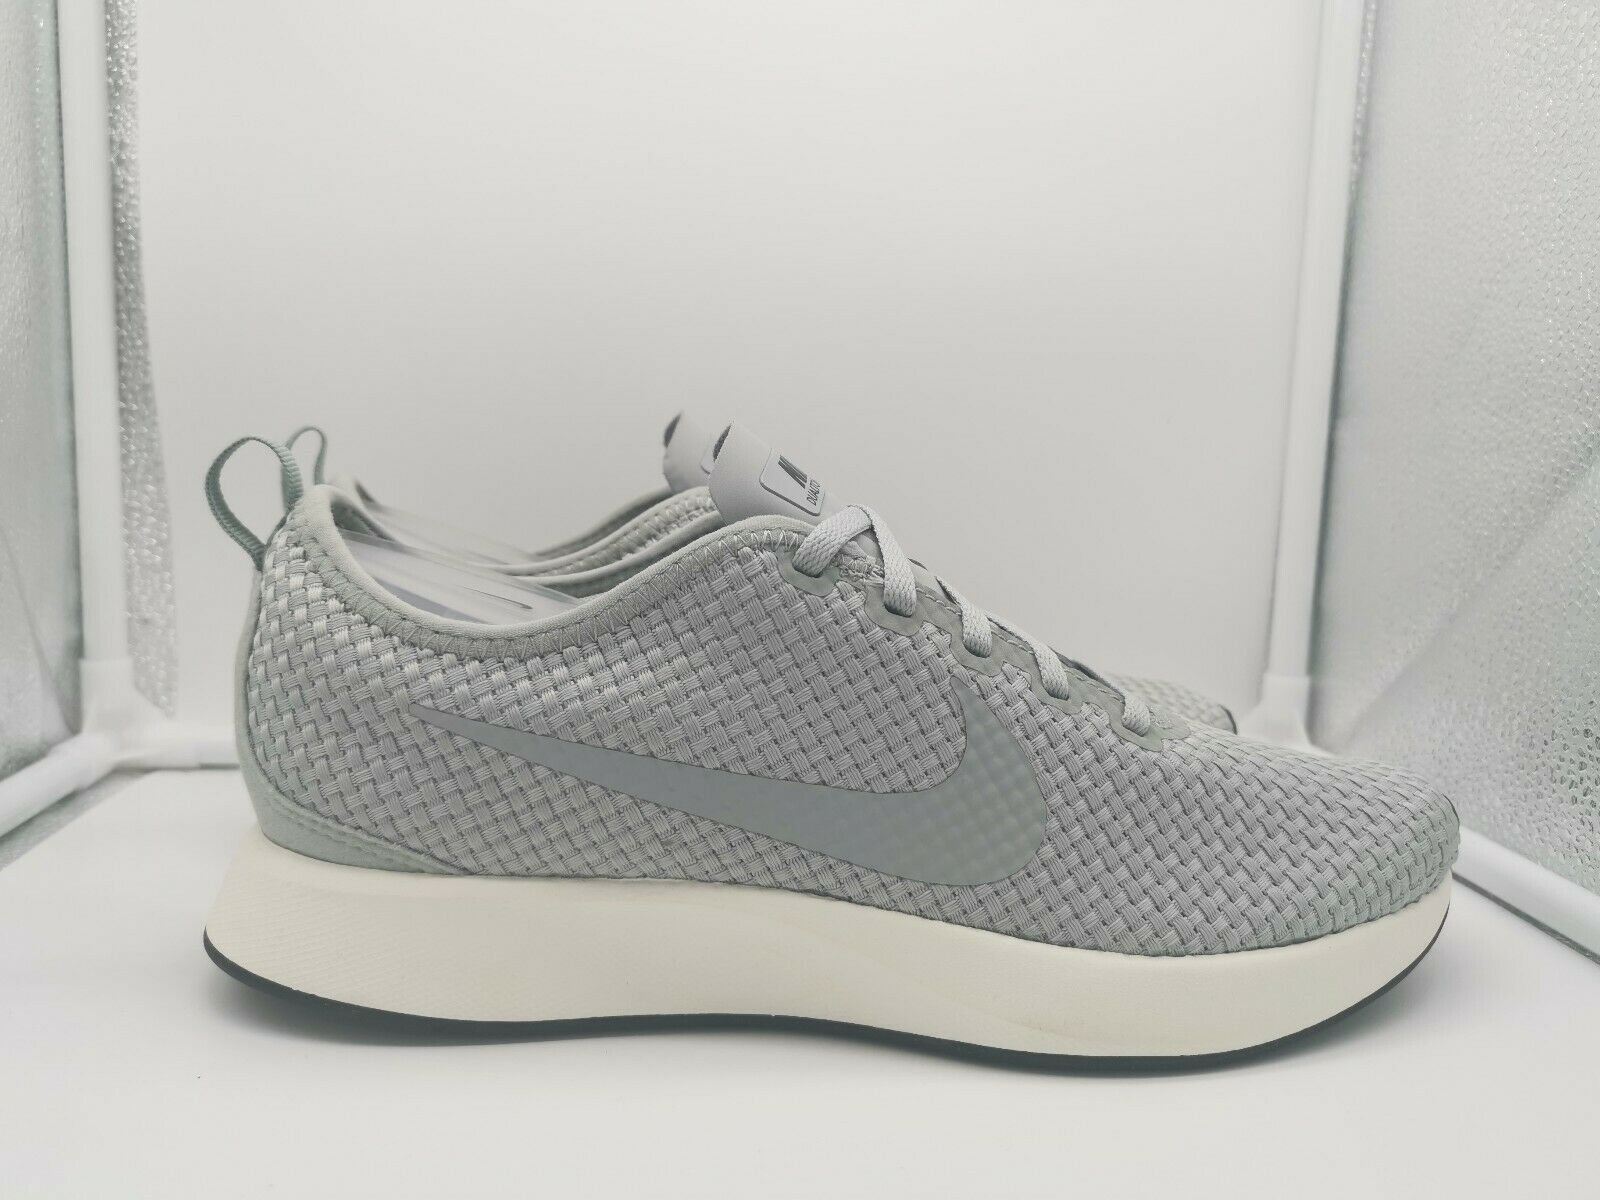 Nike Dualtone Racer SE UK 7.5 Light Plumice grau Cream 922170-006